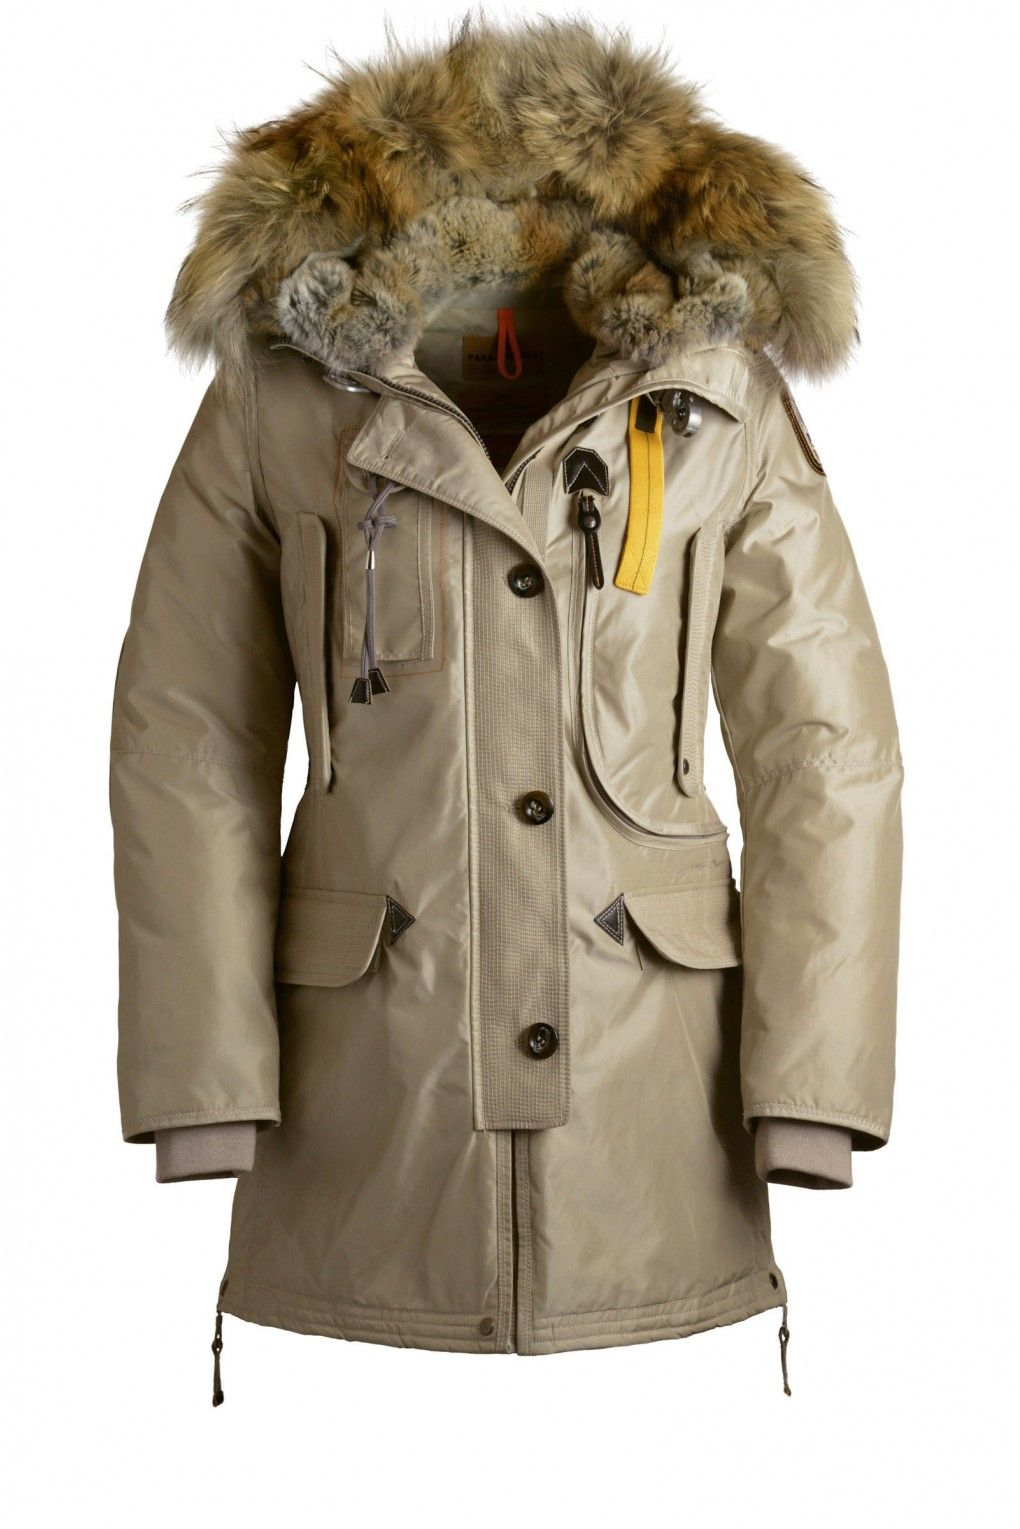 parajumpers jacket italy